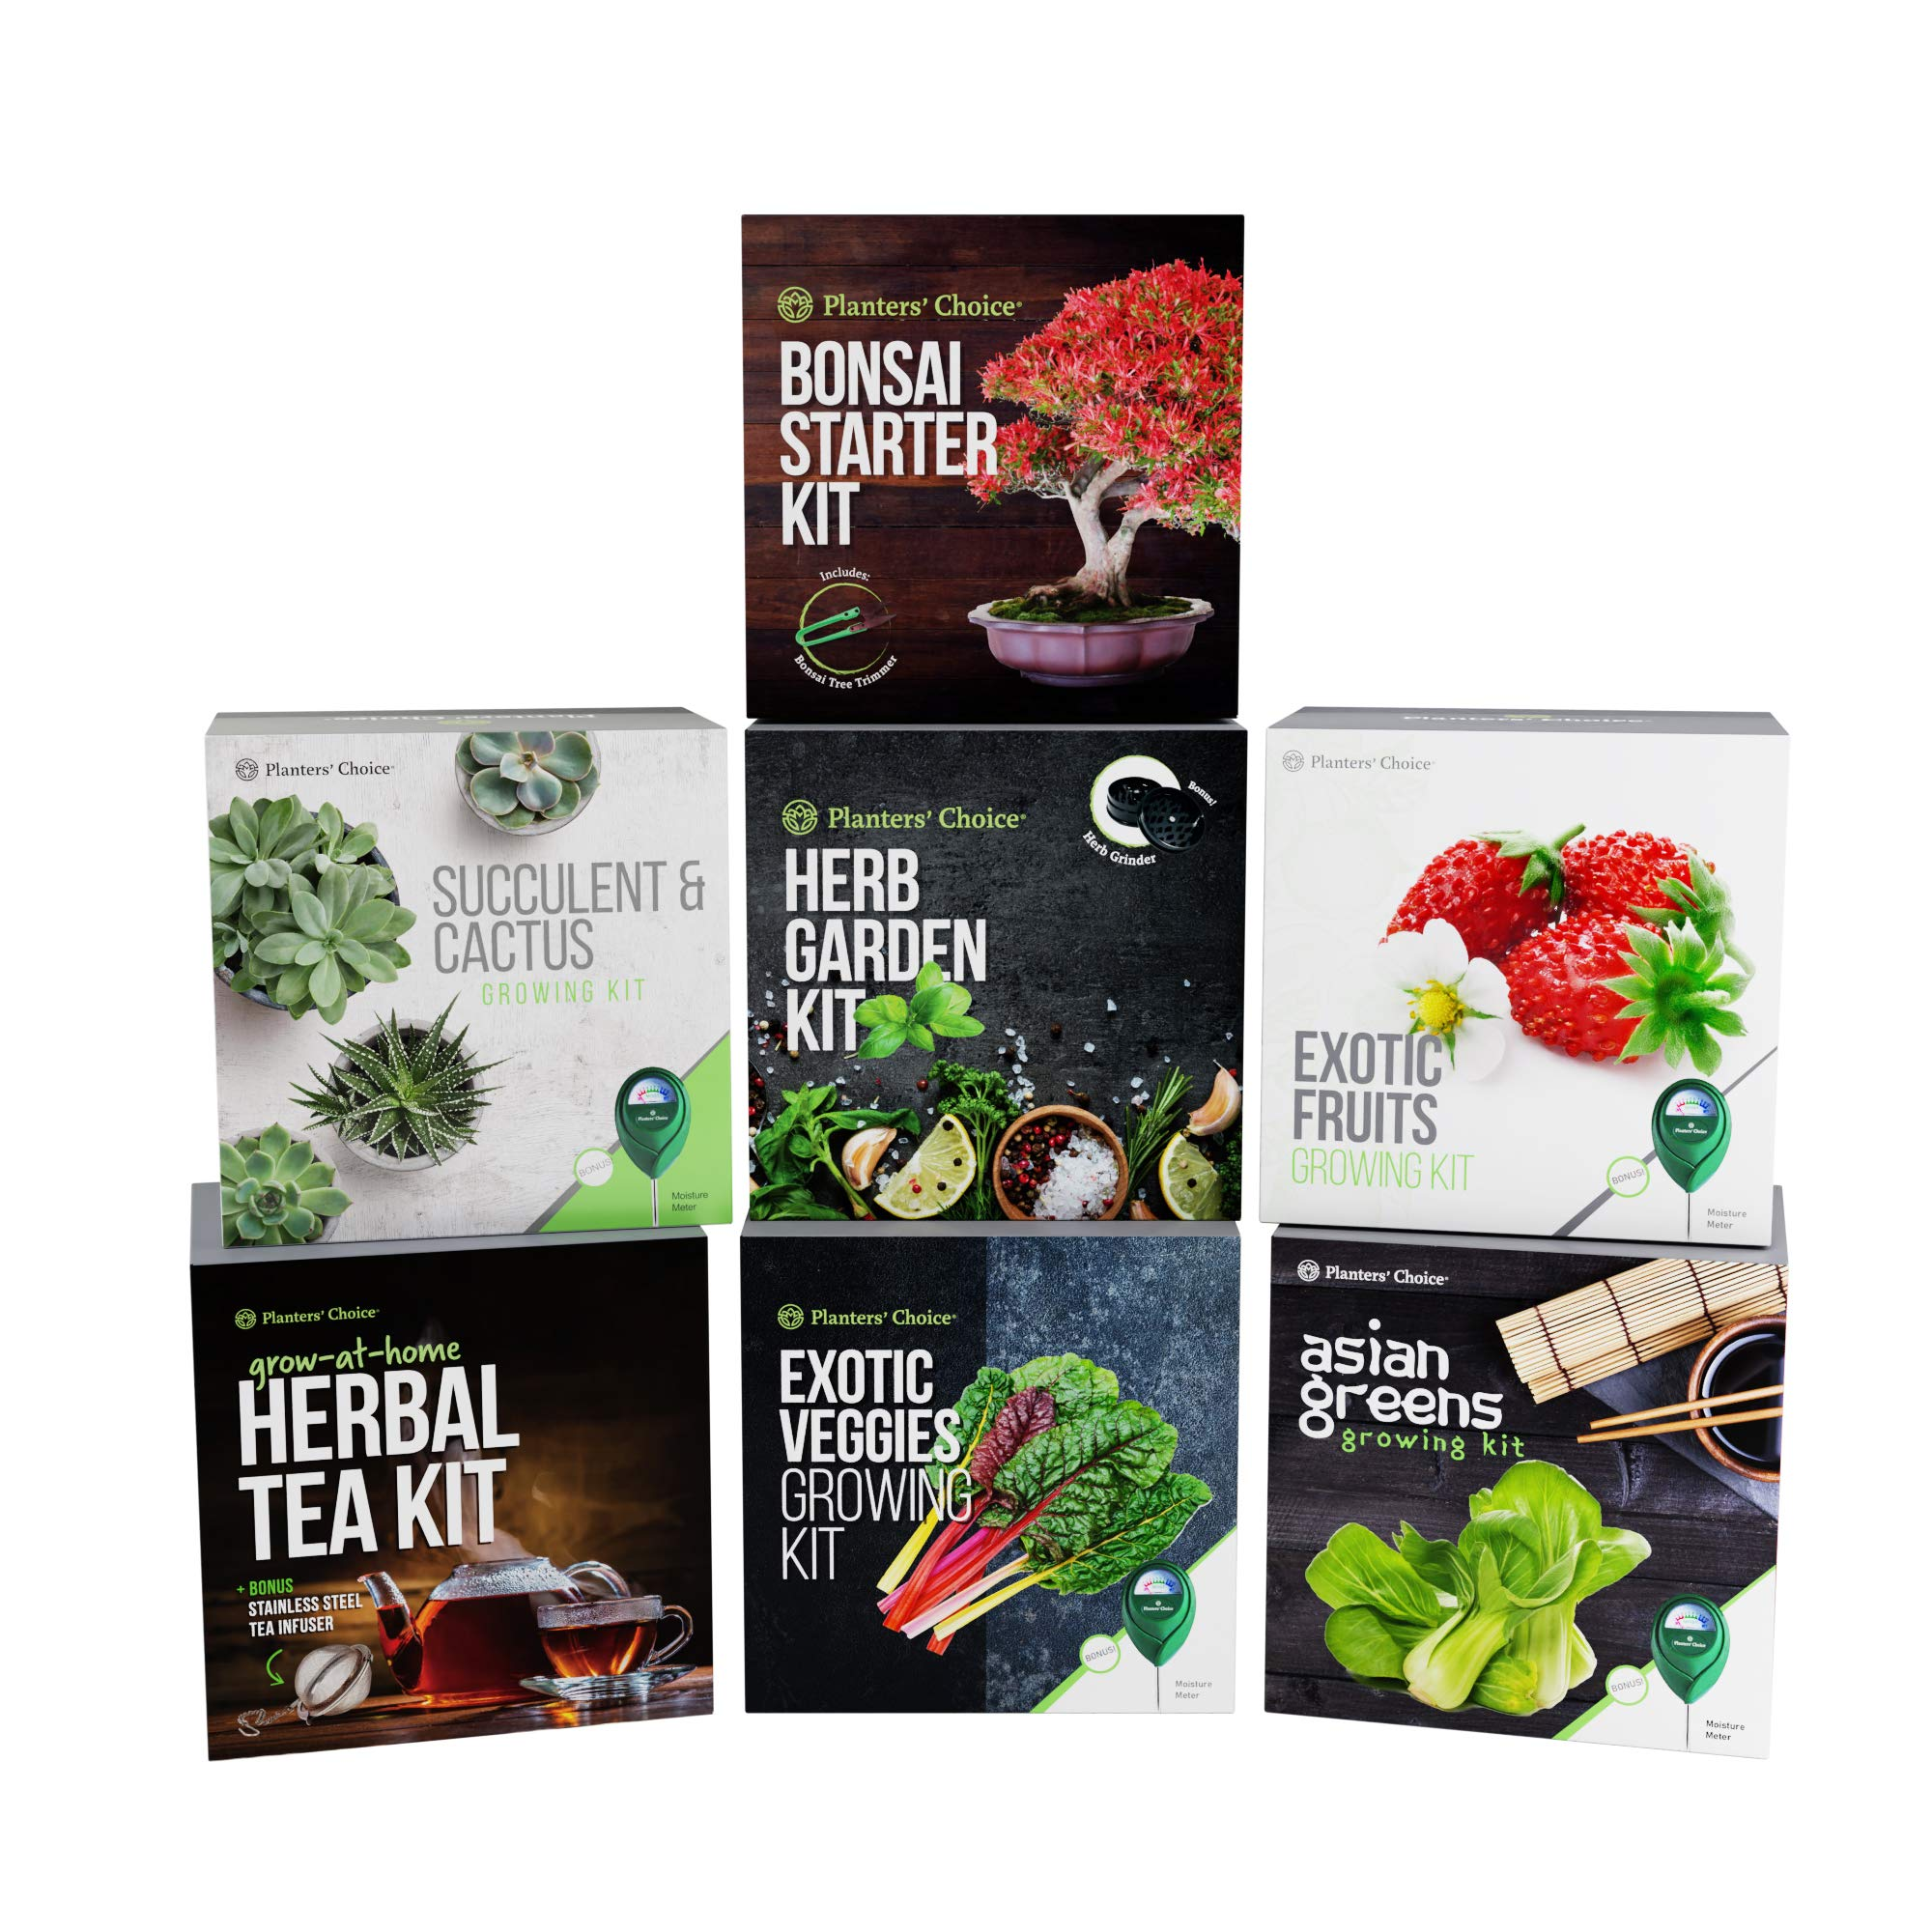 Grow 4 of Your Own Organic Herbal Tea Kit + Stainless Steel Tea Infuser | Chamomile, Peppermint, Lemon Balm, Red Clover | Everything Included: Pots, Soil, Seeds, Booklet, Bamboo Plant Labels by Planters' Choice (Image #6)